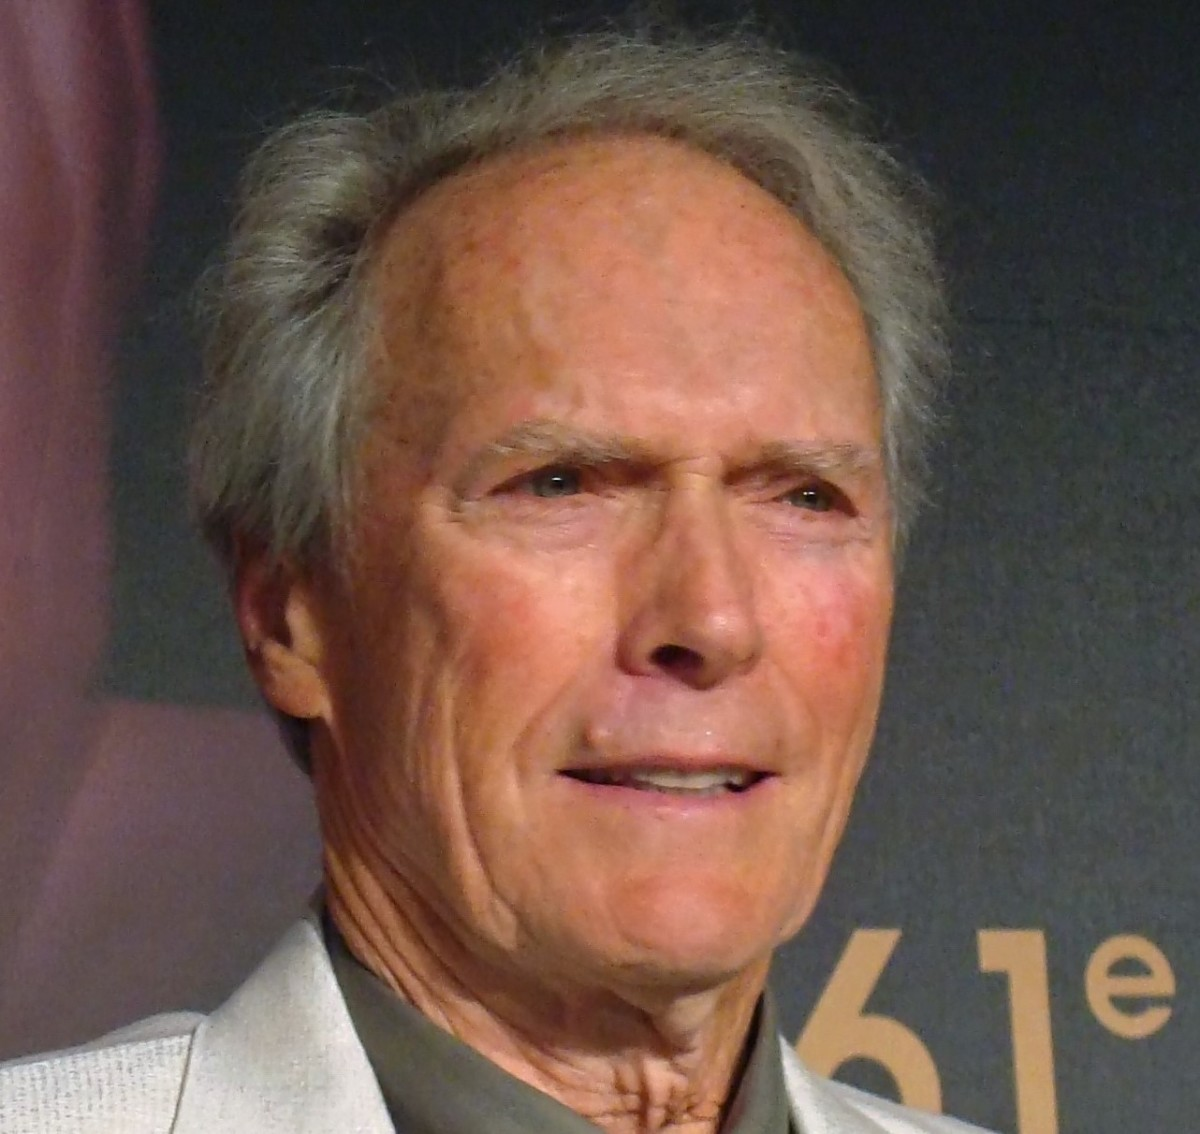 Clint Eastwood: born May 31 1930 is a renowned American actor, and politician